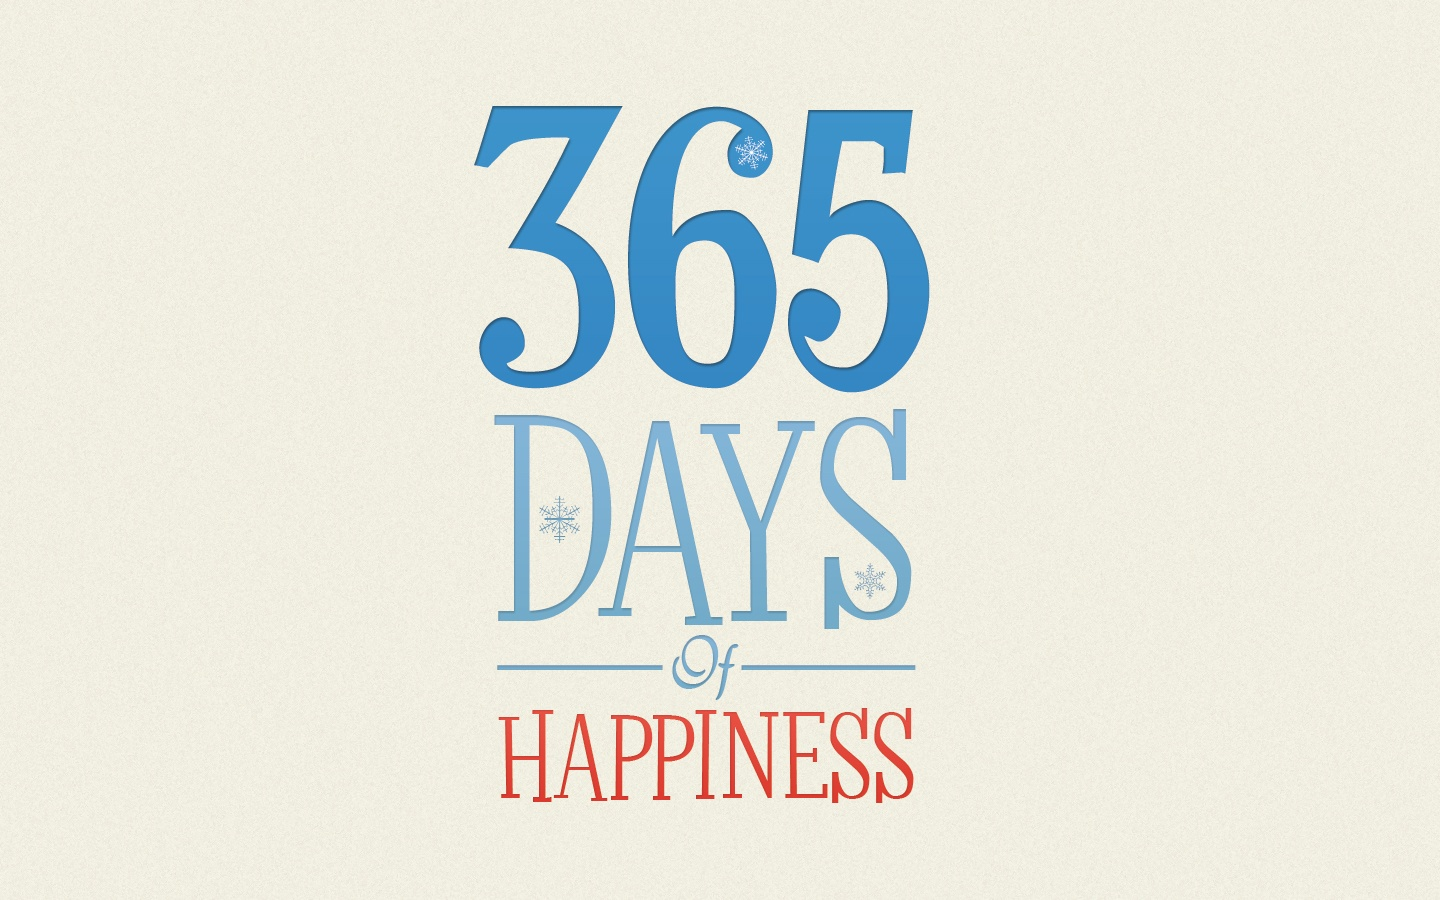 DaysOfHappiness_Wallpaper